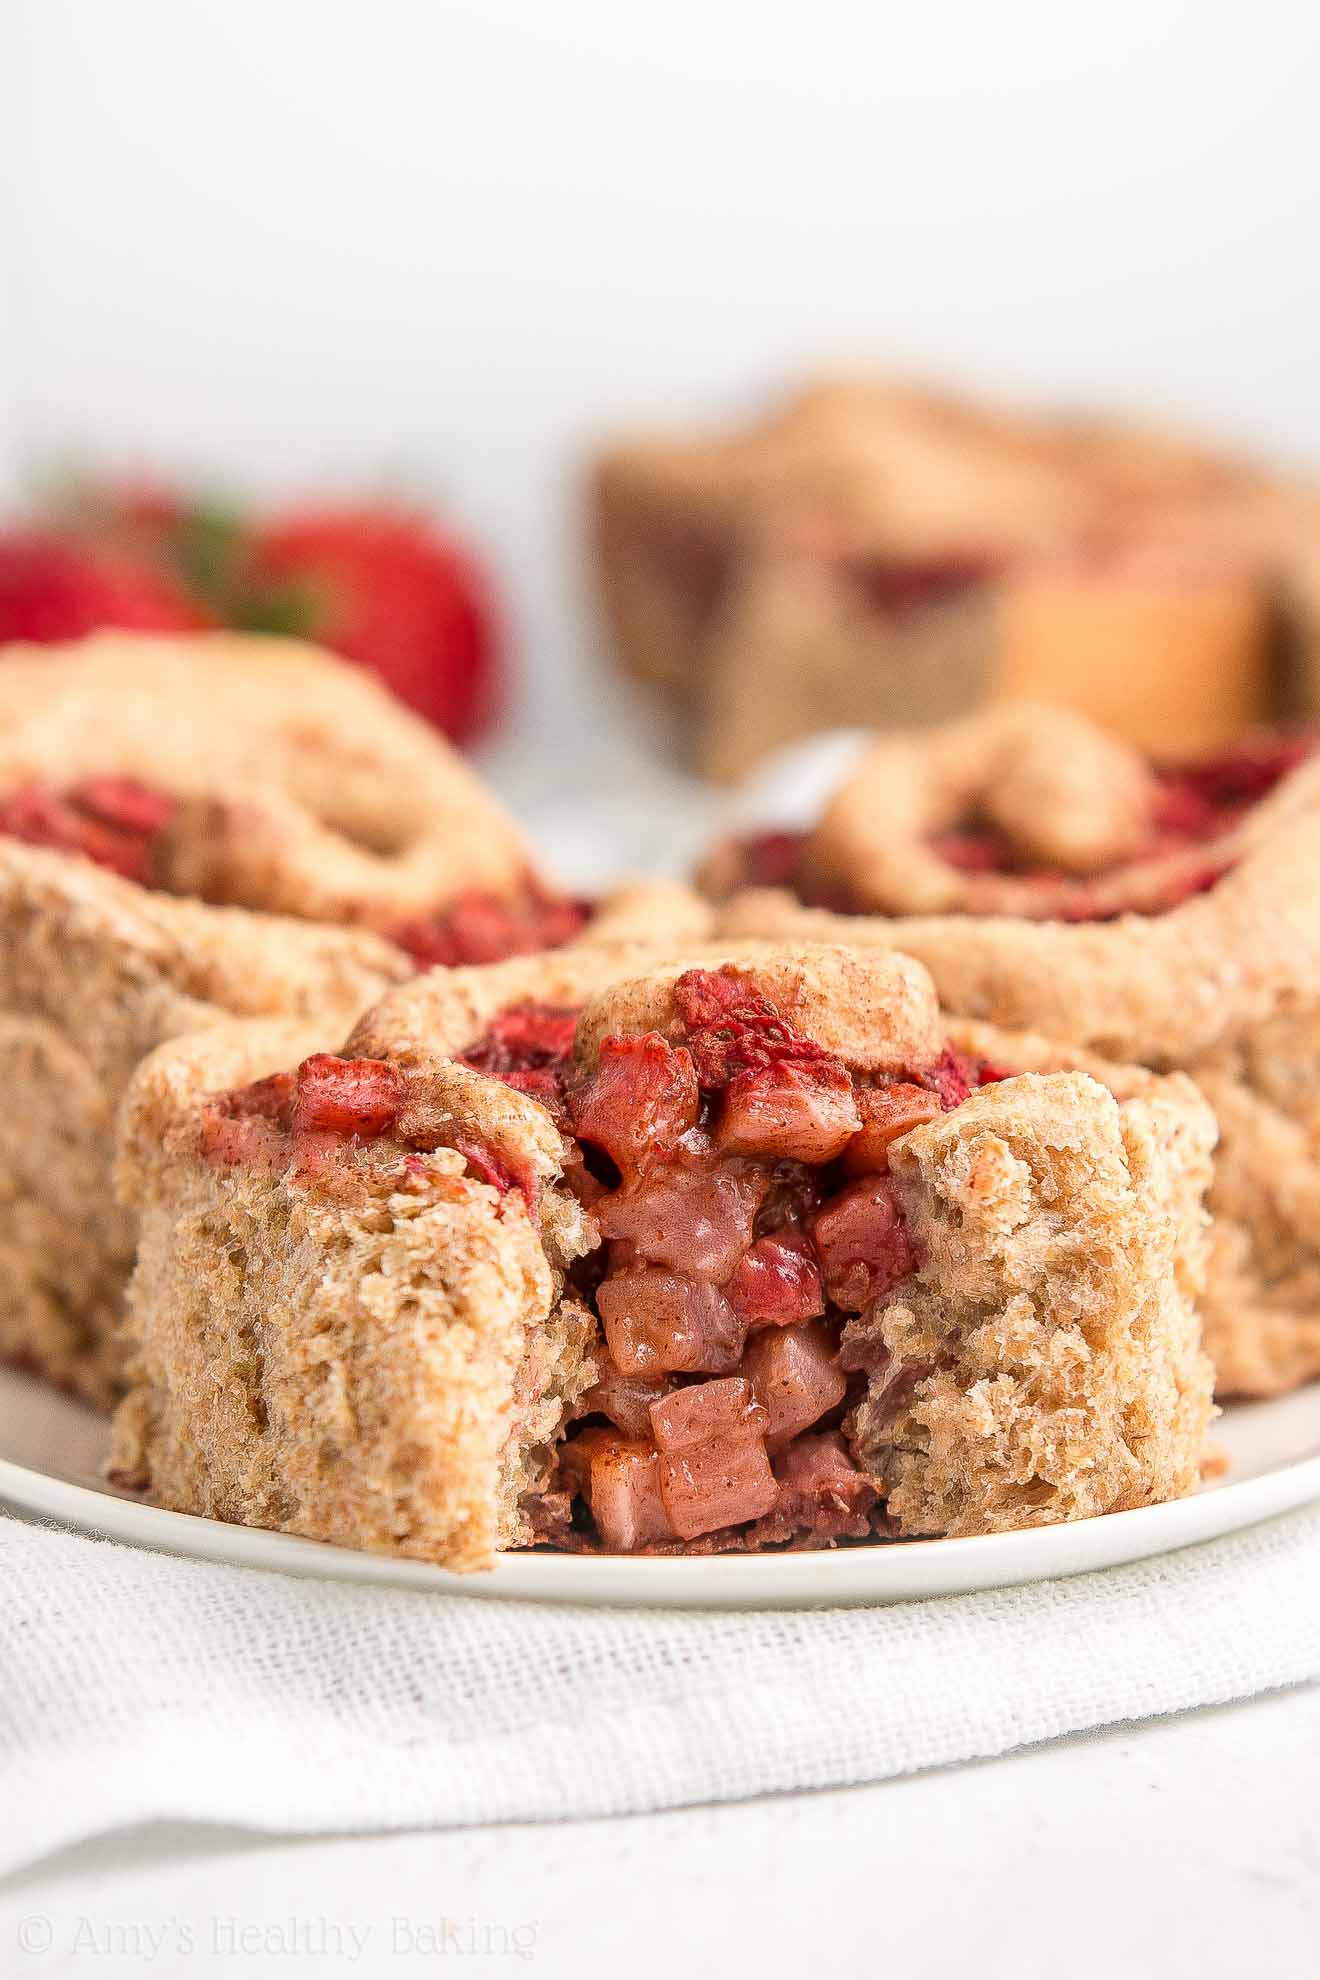 Healthy Clean Eating Strawberry Cinnamon Rolls From Scratch